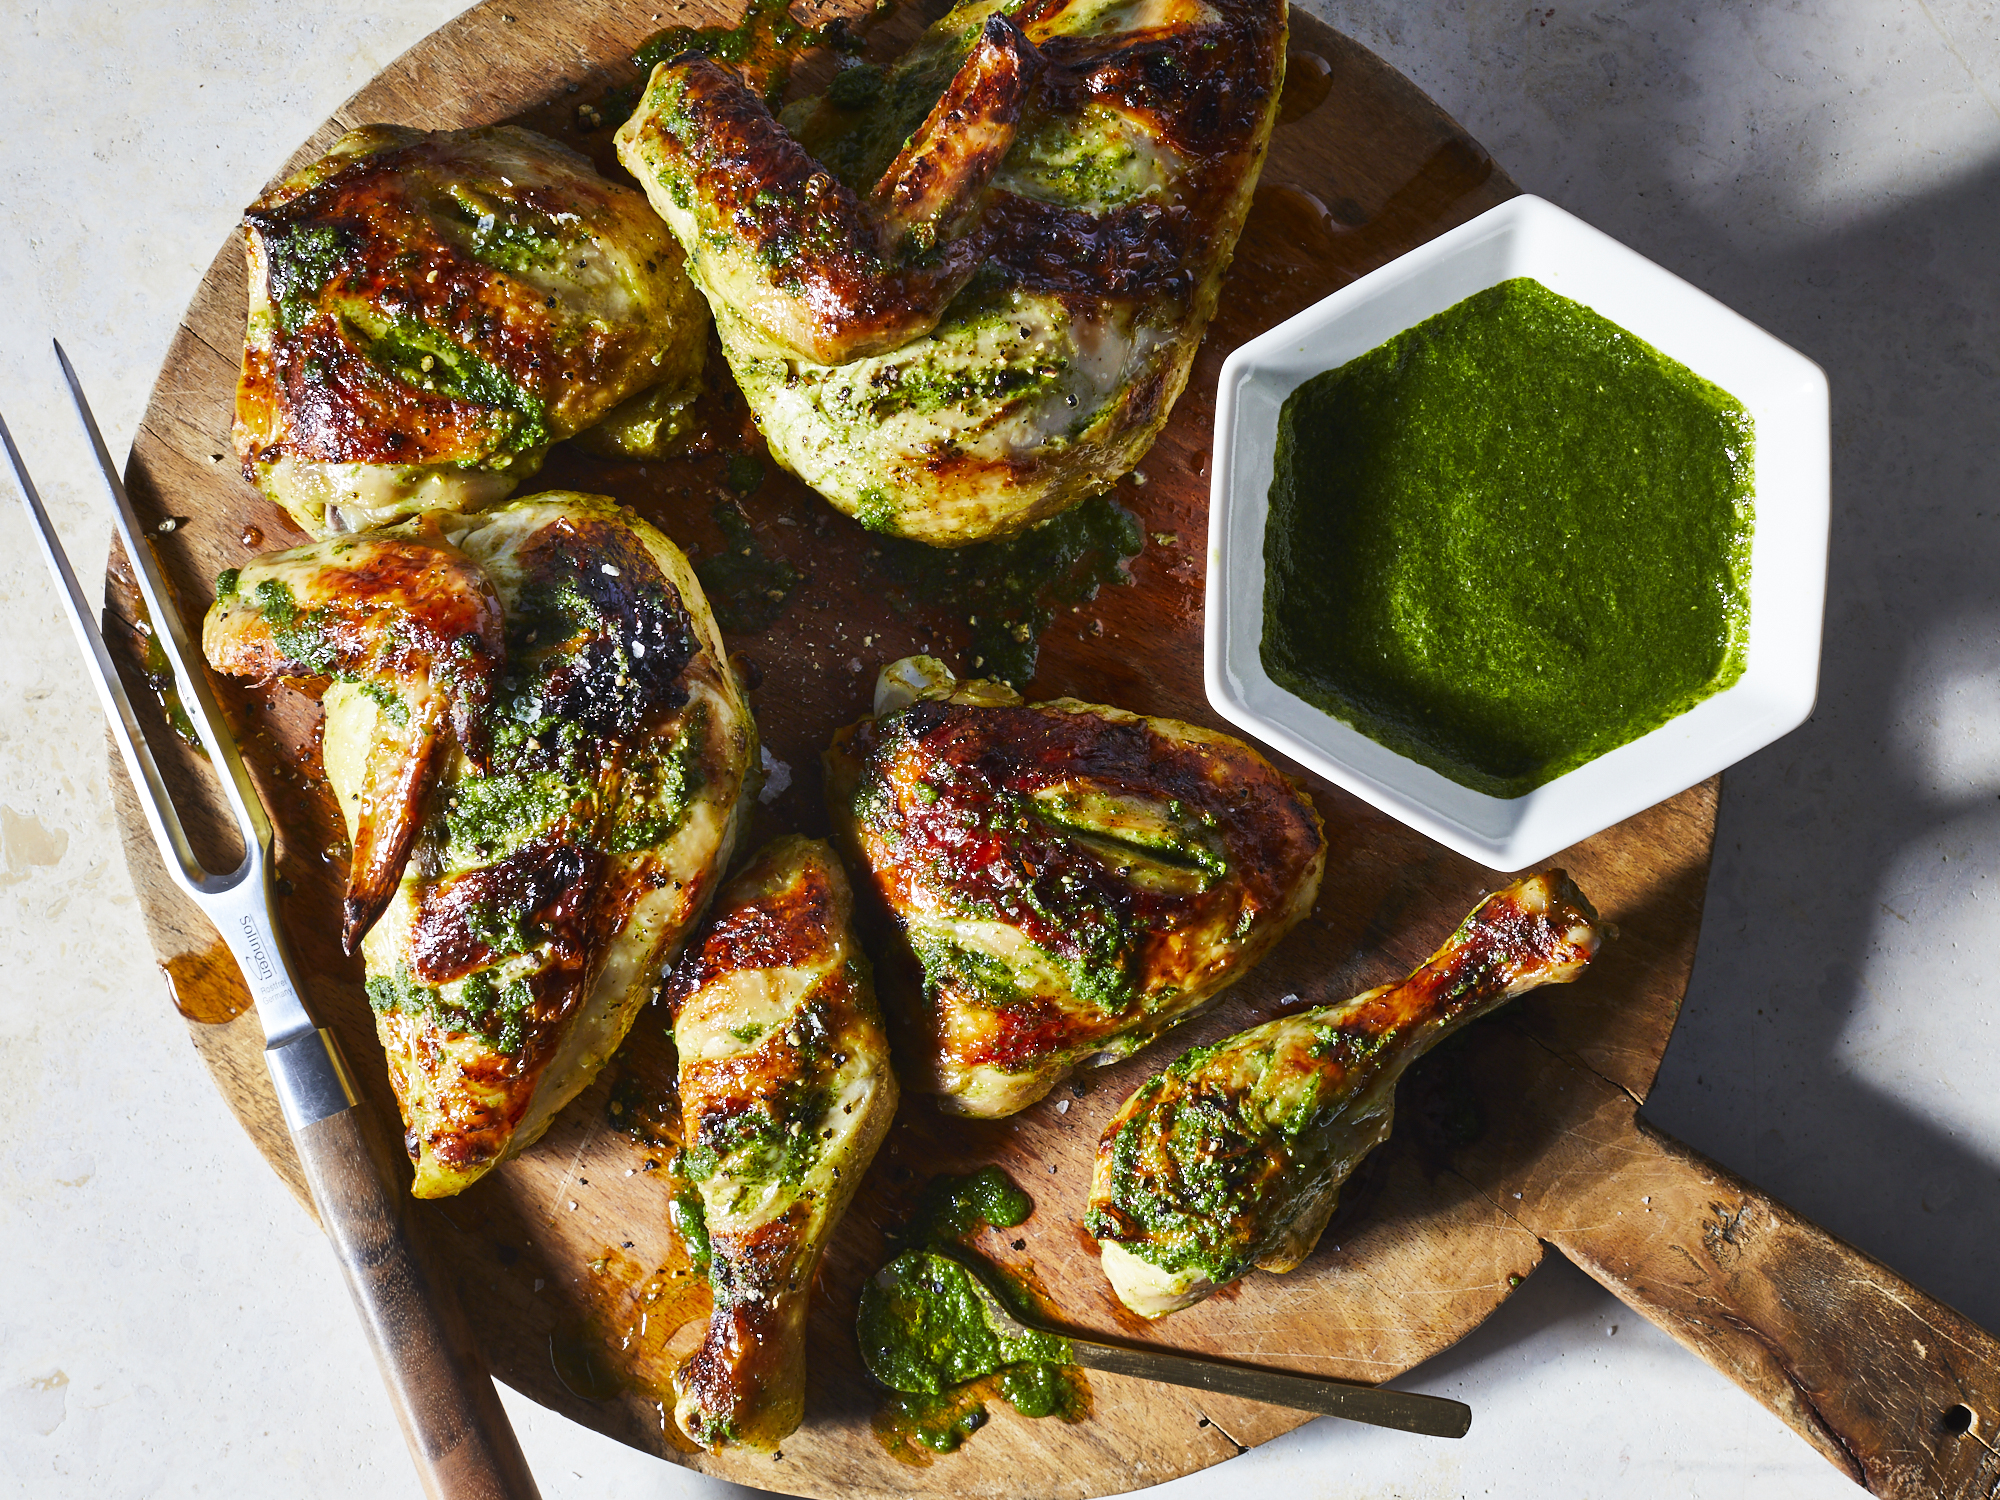 Roast Chicken with Cilantro-Mint Chutney